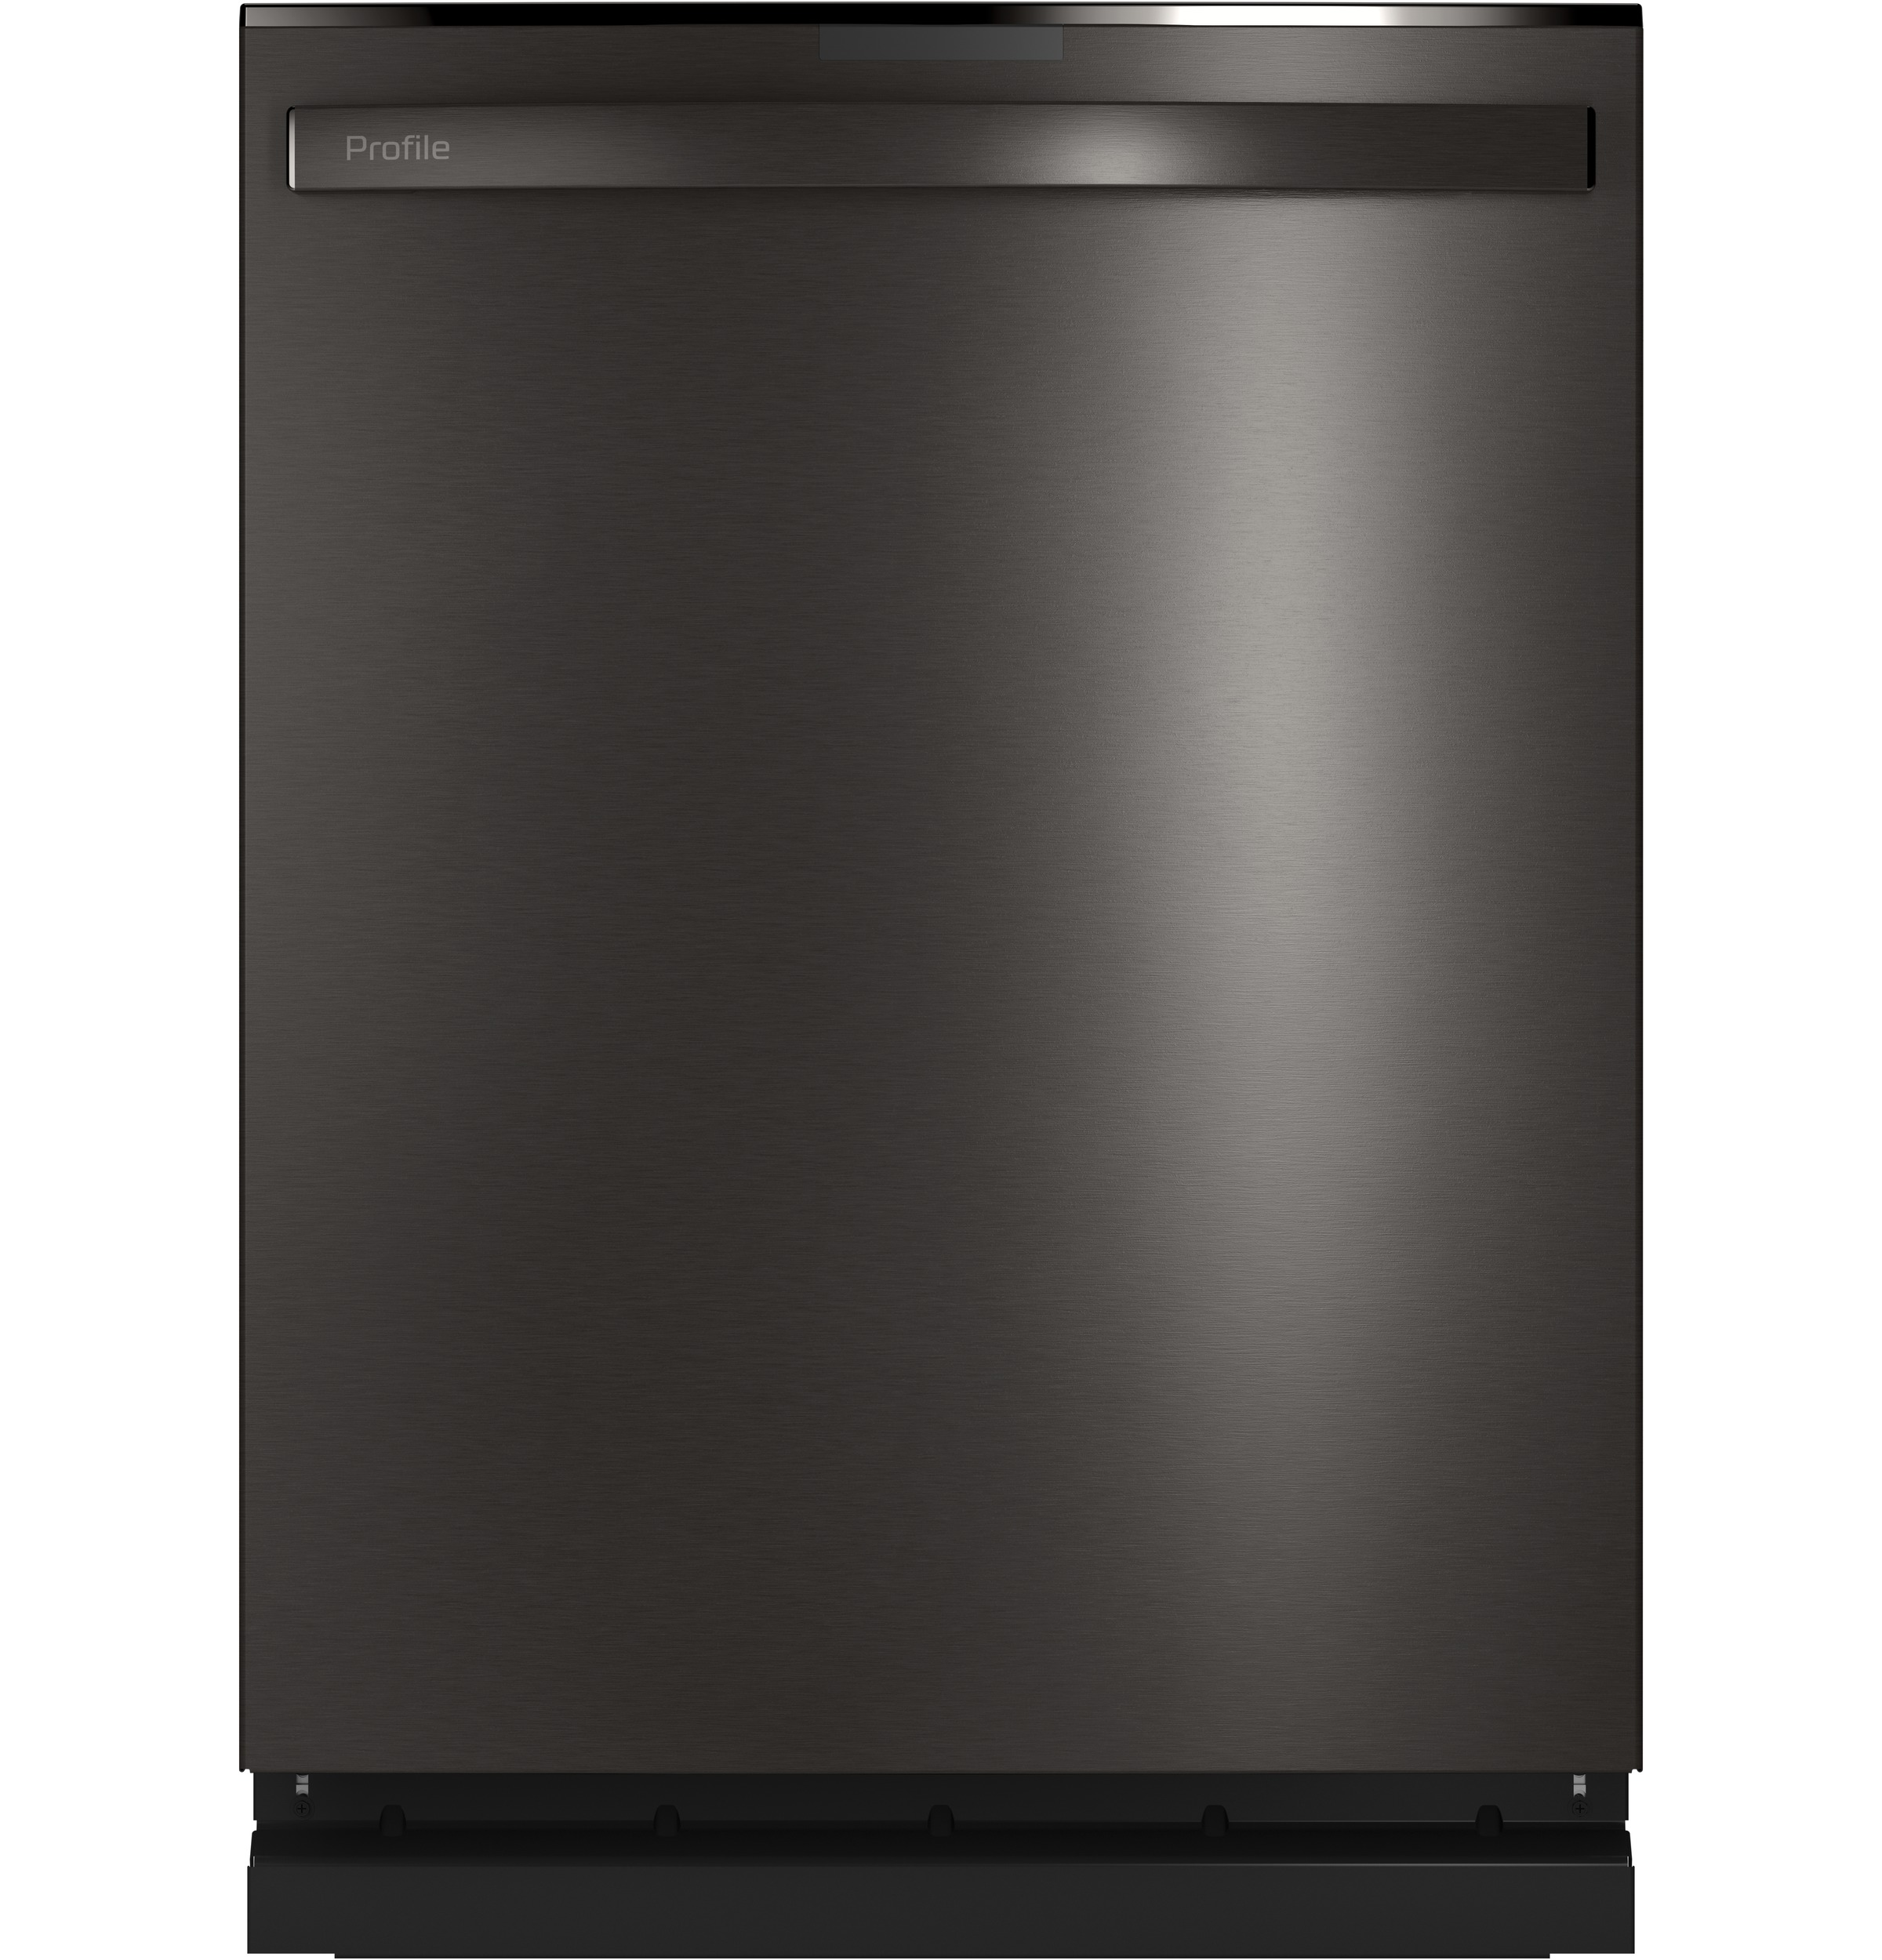 GE Profile GE Profile™ Top Control with Stainless Steel Interior Dishwasher with Sanitize Cycle & Dry Boost with Fan Assist